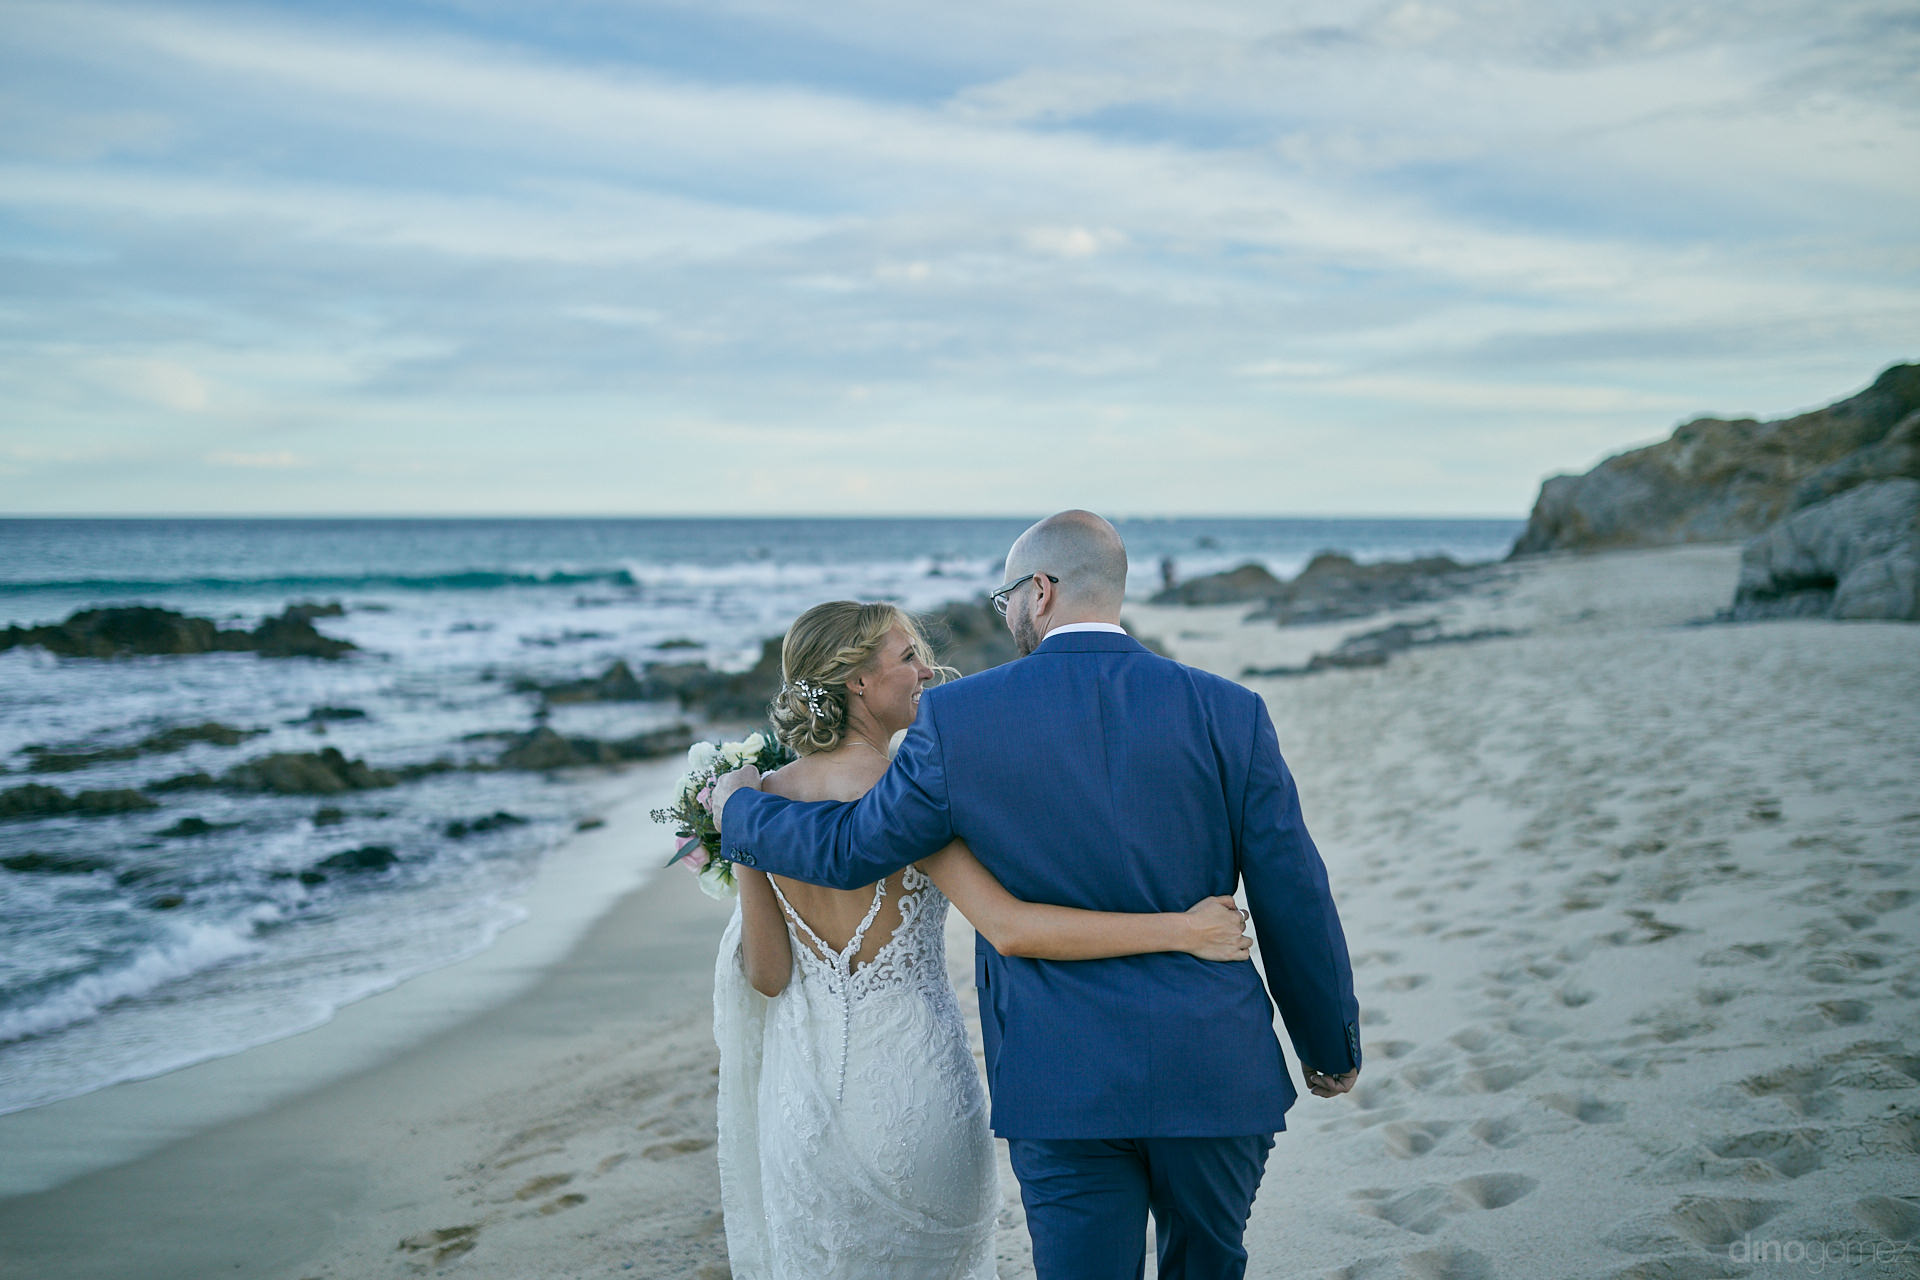 Destination Wedding Photographer In Cabo Dino Gomez Was Behind This Couple - Mm